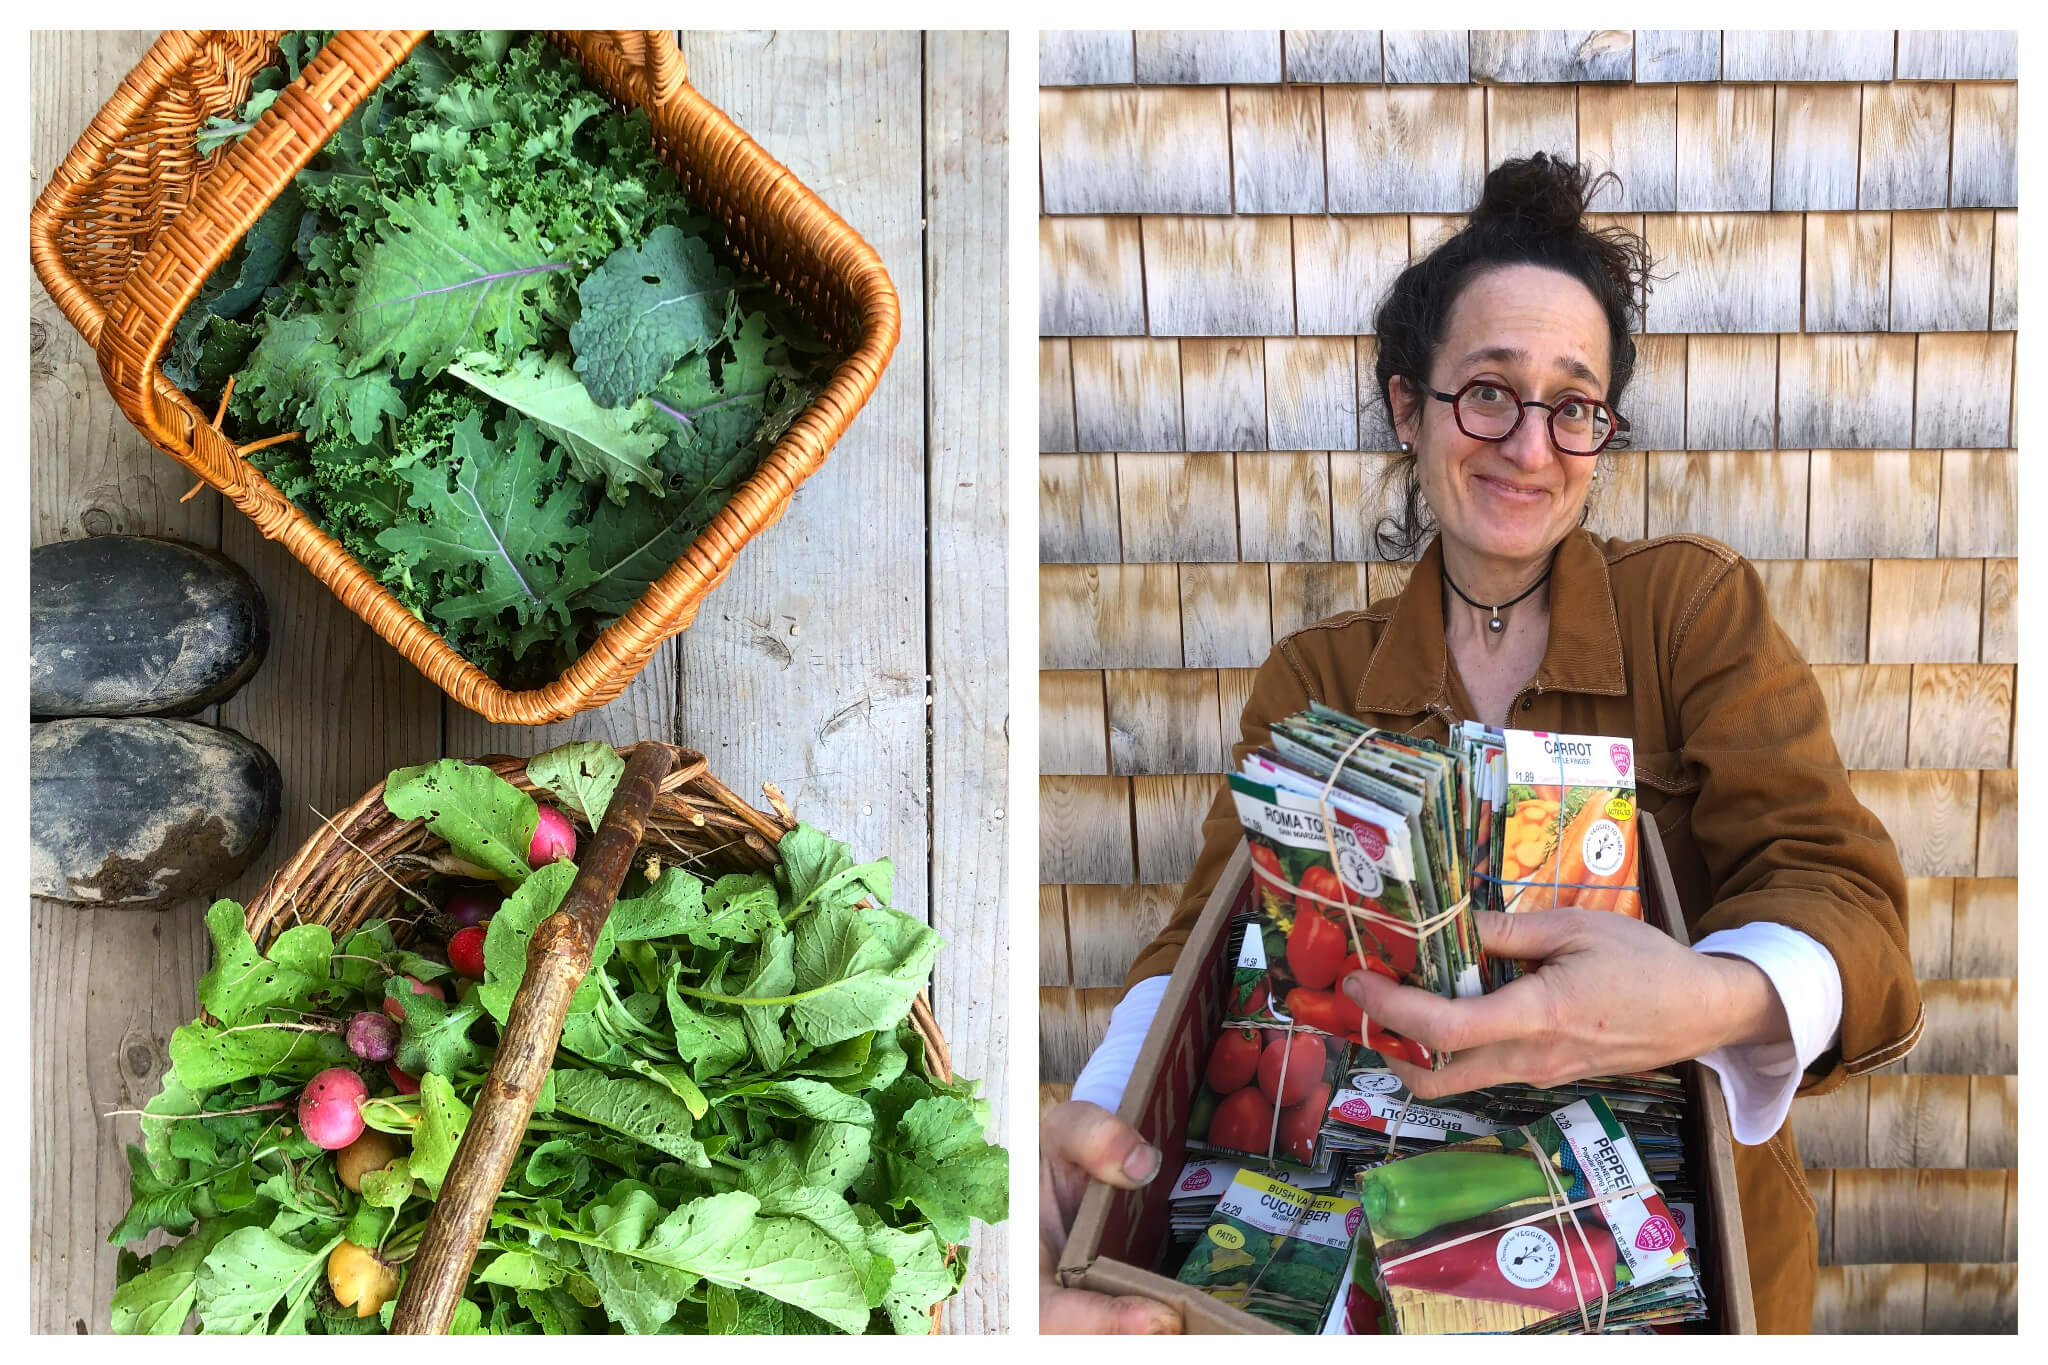 Left: A pair of muddy boots next to two baskets of fresh produce picked from a garden, including kale and radishes, Right: Erica Berman, founder of both HiP Paris and Veggies to Table, hold 1100 seed packets she is about to donate to pantries so people can grow their own gardens.